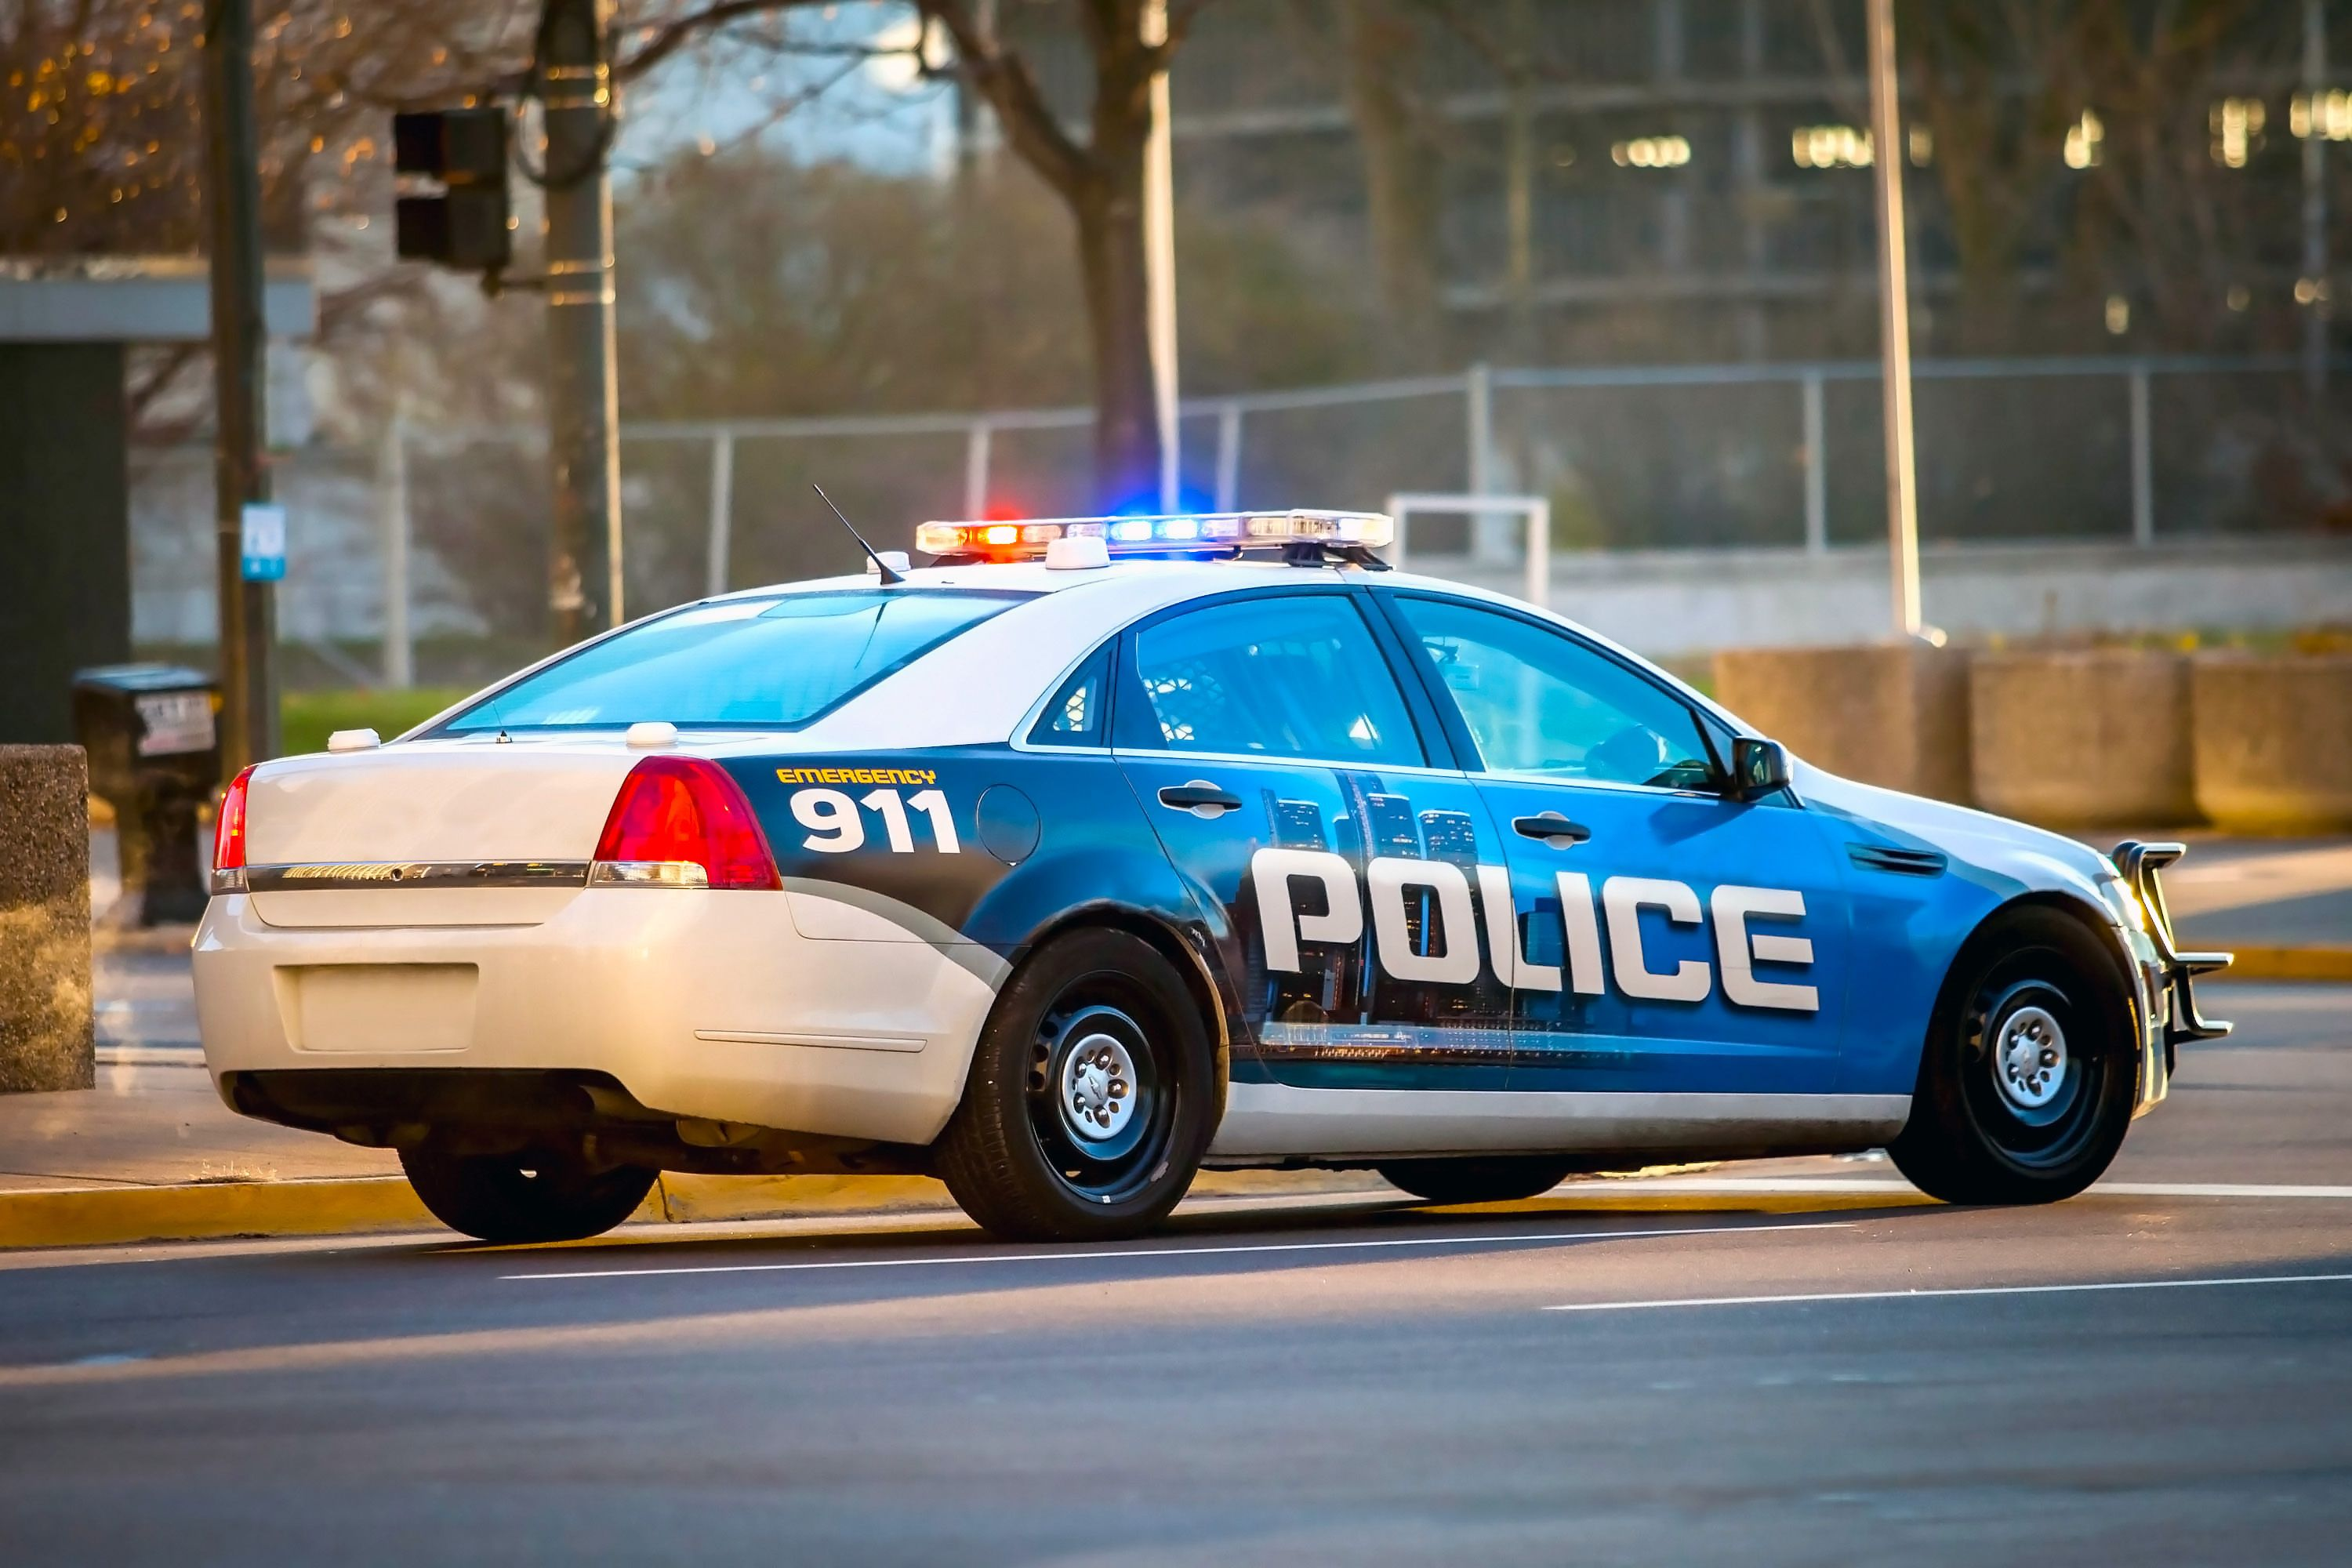 Police car driving on a street.   Source: Shutterstock